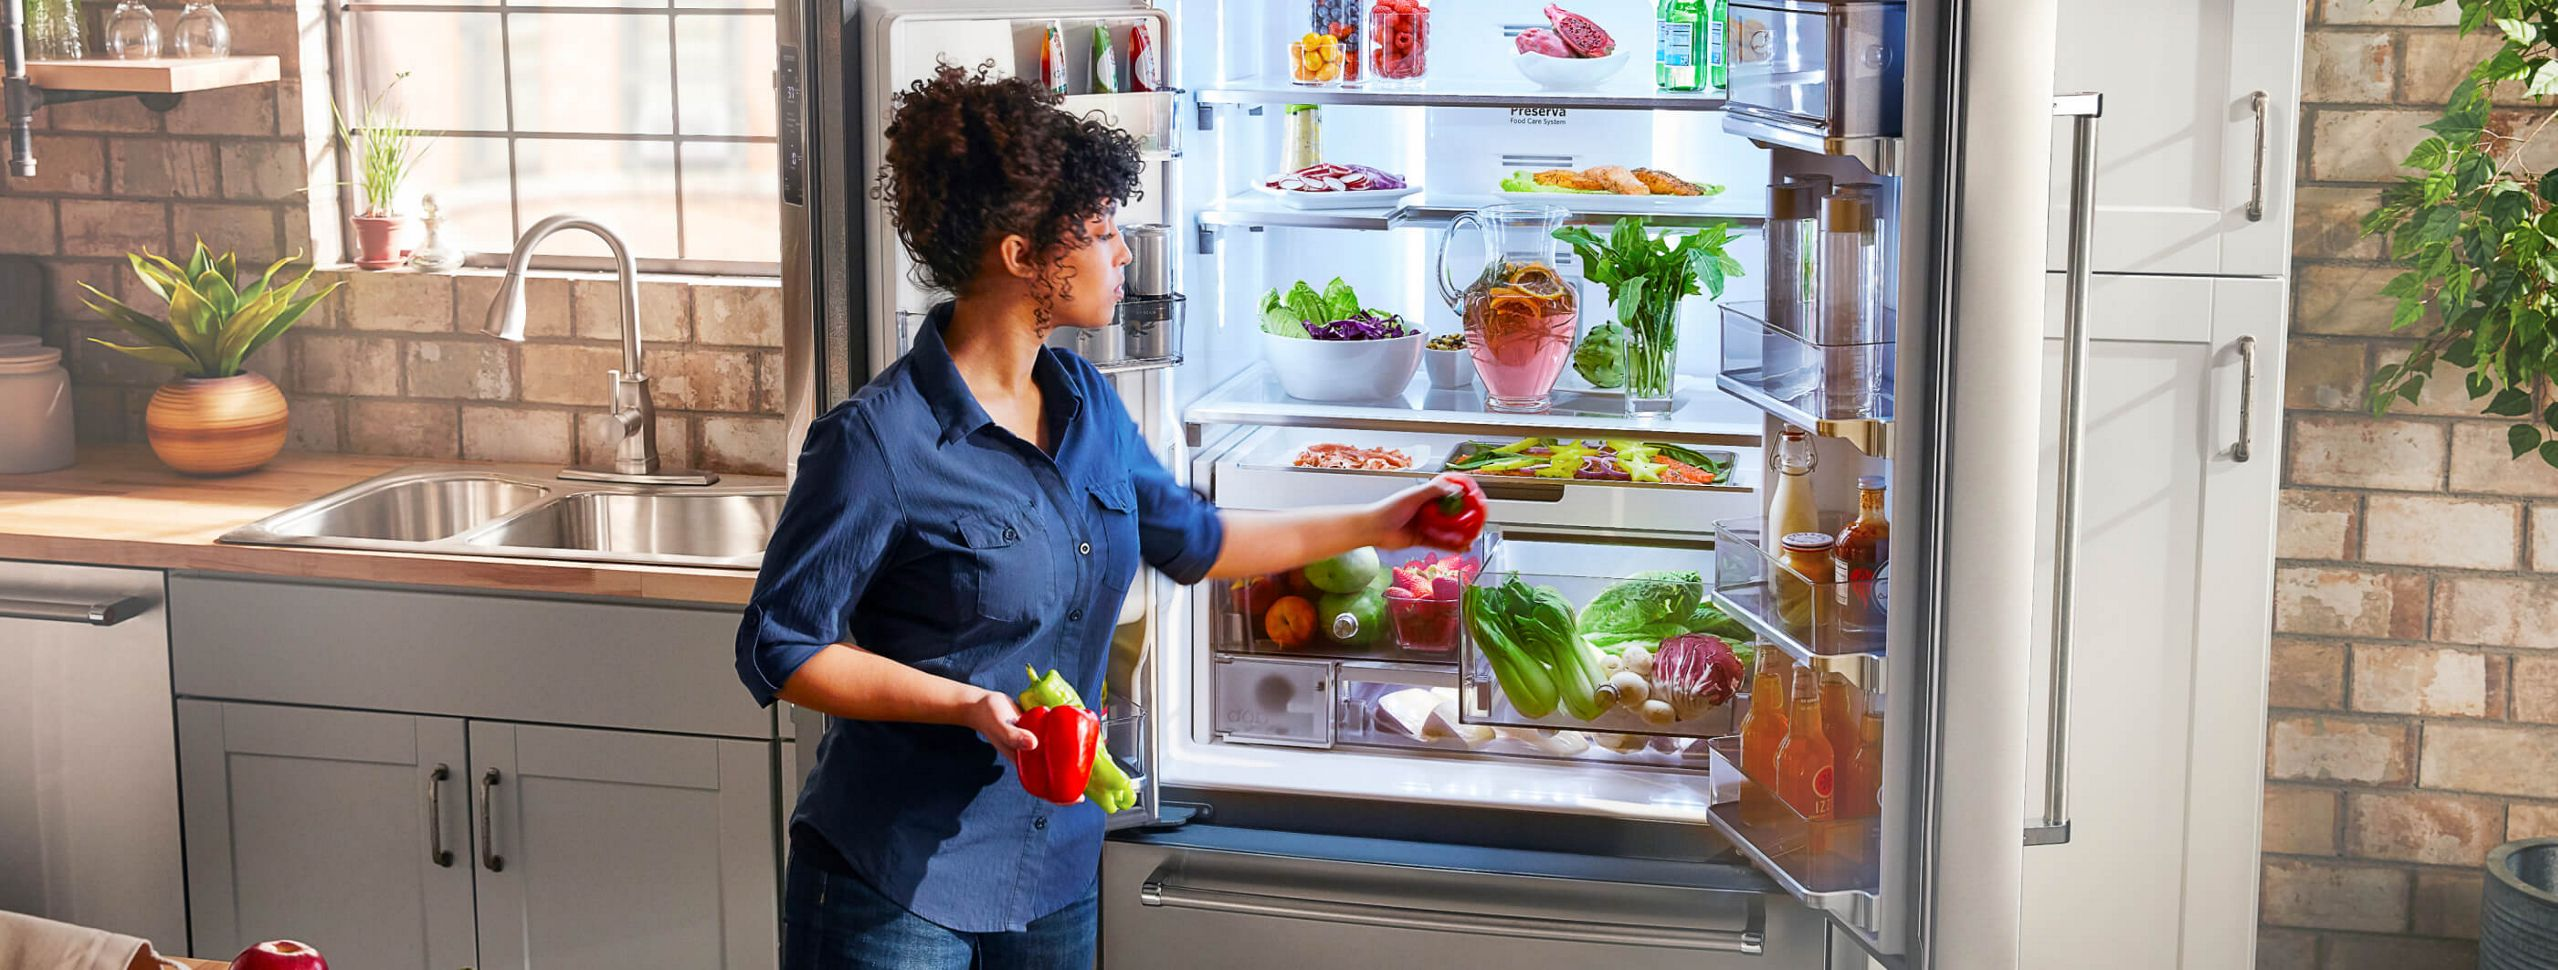 A person putting away fresh veggies in her refrigerator.